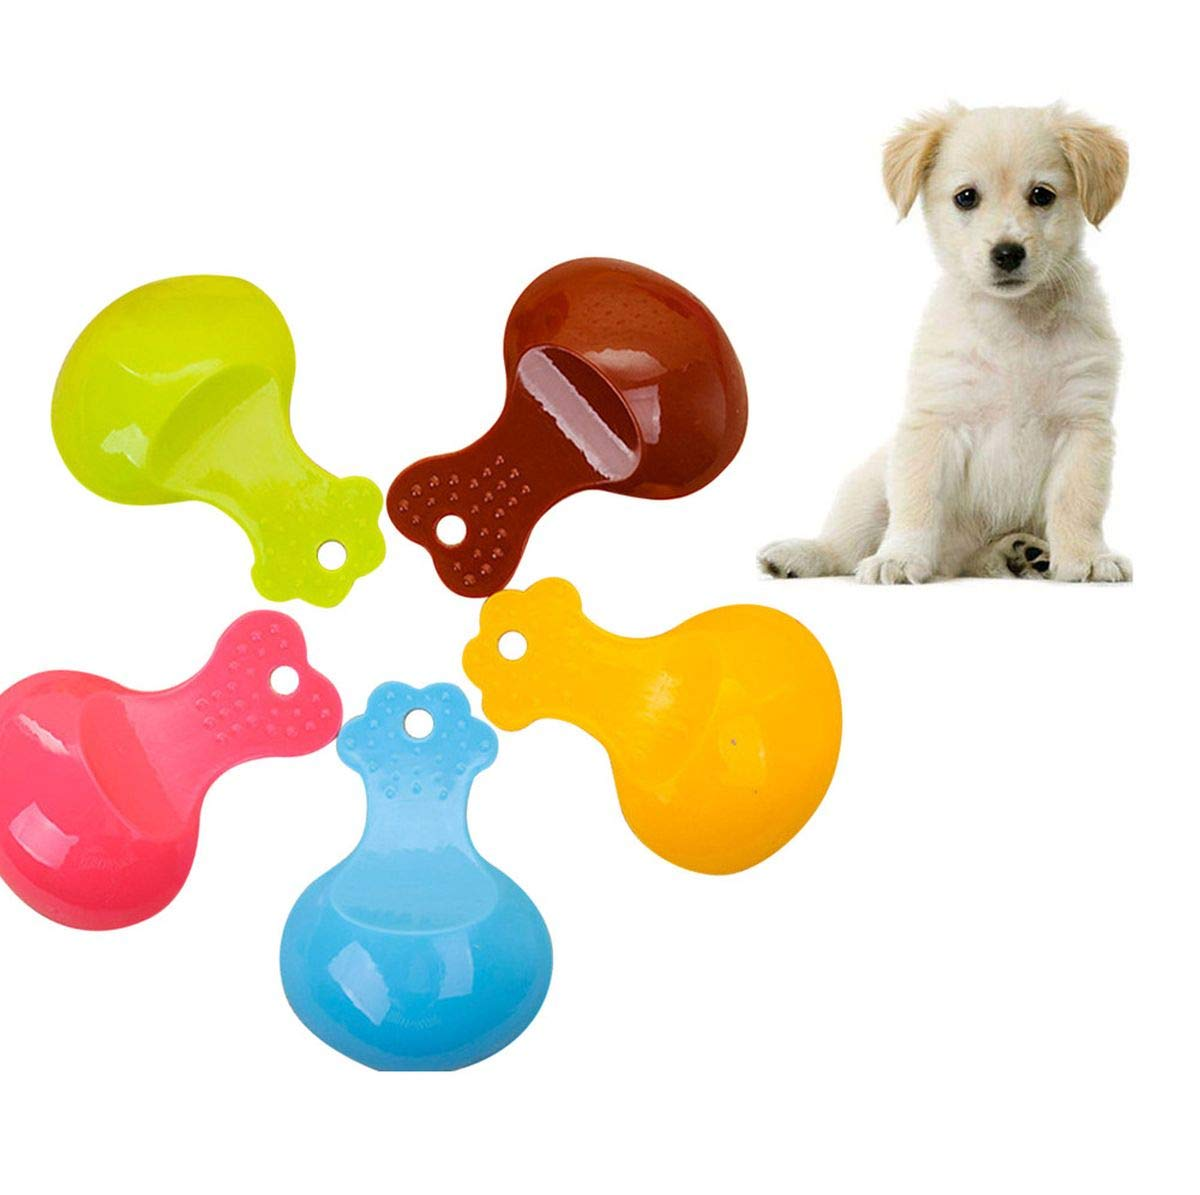 Meiliwanju Pet Food Scoops, Dog Food Plastic Scoop Candy Color Great for Dog, Cat and Bird Food (Random, One Size)